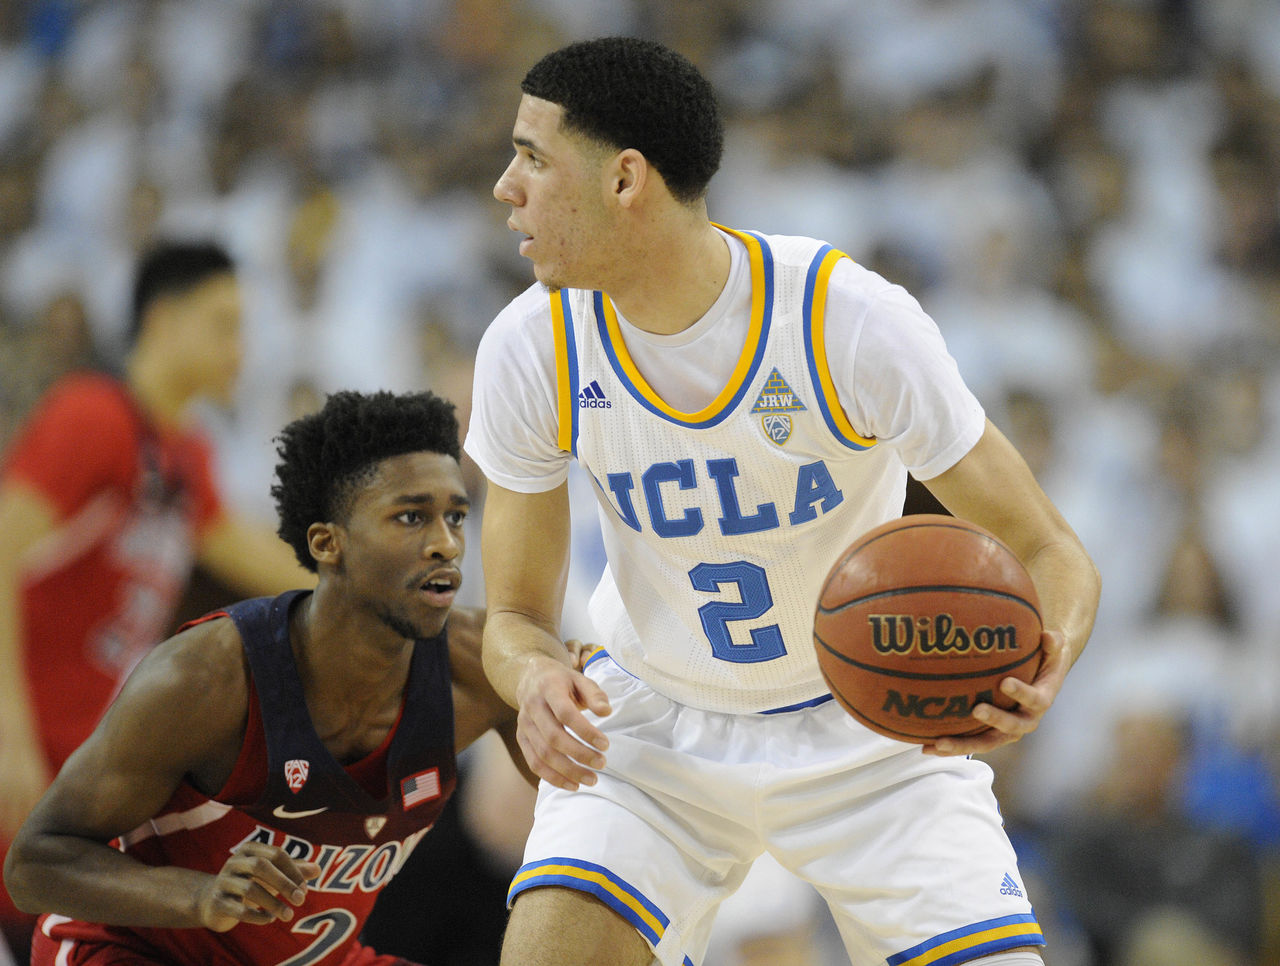 Cropped 2017 01 21t221415z 1943992377 nocid rtrmadp 3 ncaa basketball arizona at ucla